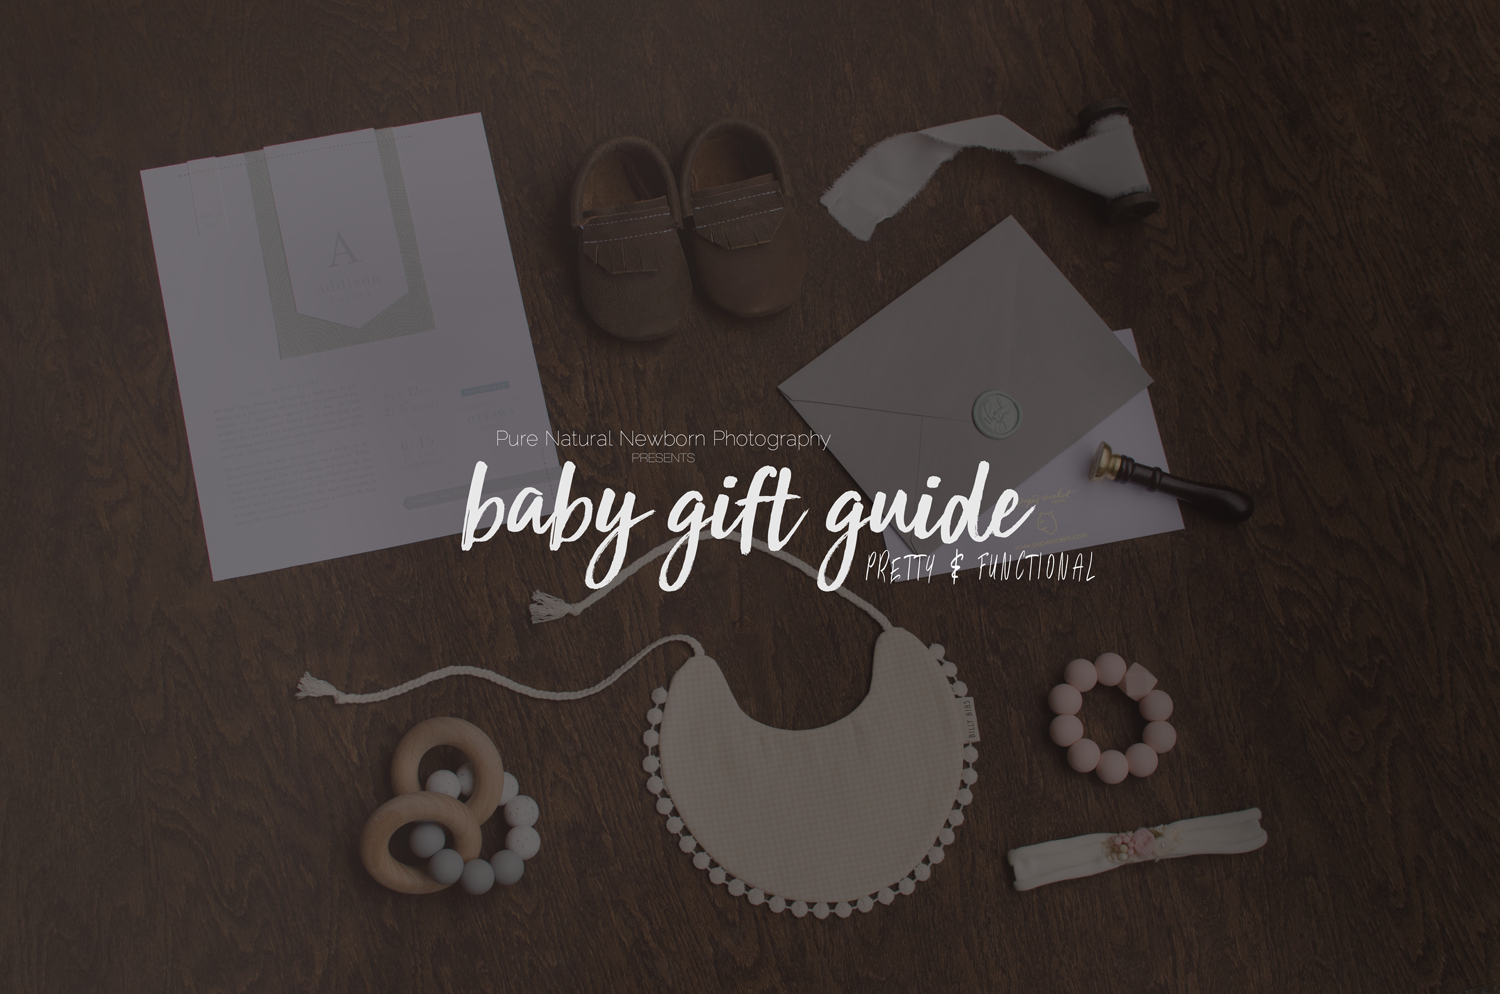 Baby Gift Guide : Baby gift guide handmade canadian pretty and functional shower ottawa newborn photographer